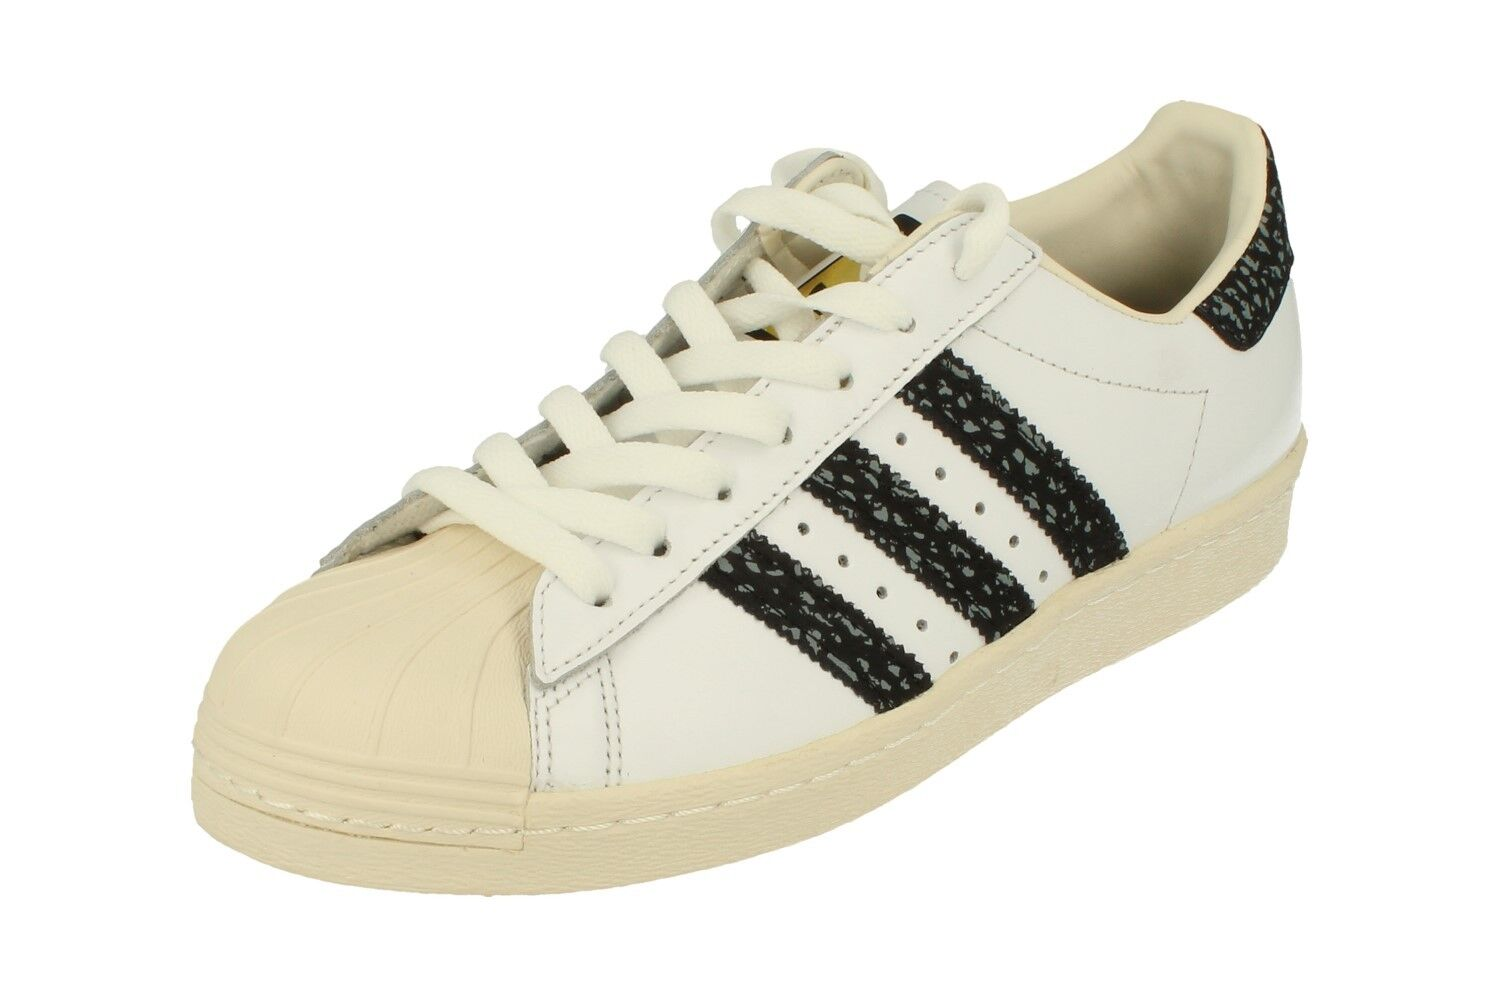 Adidas Originals  Superstar 80s Zapatillas Hombre  Originals Zapatillas  S75847 4d1078